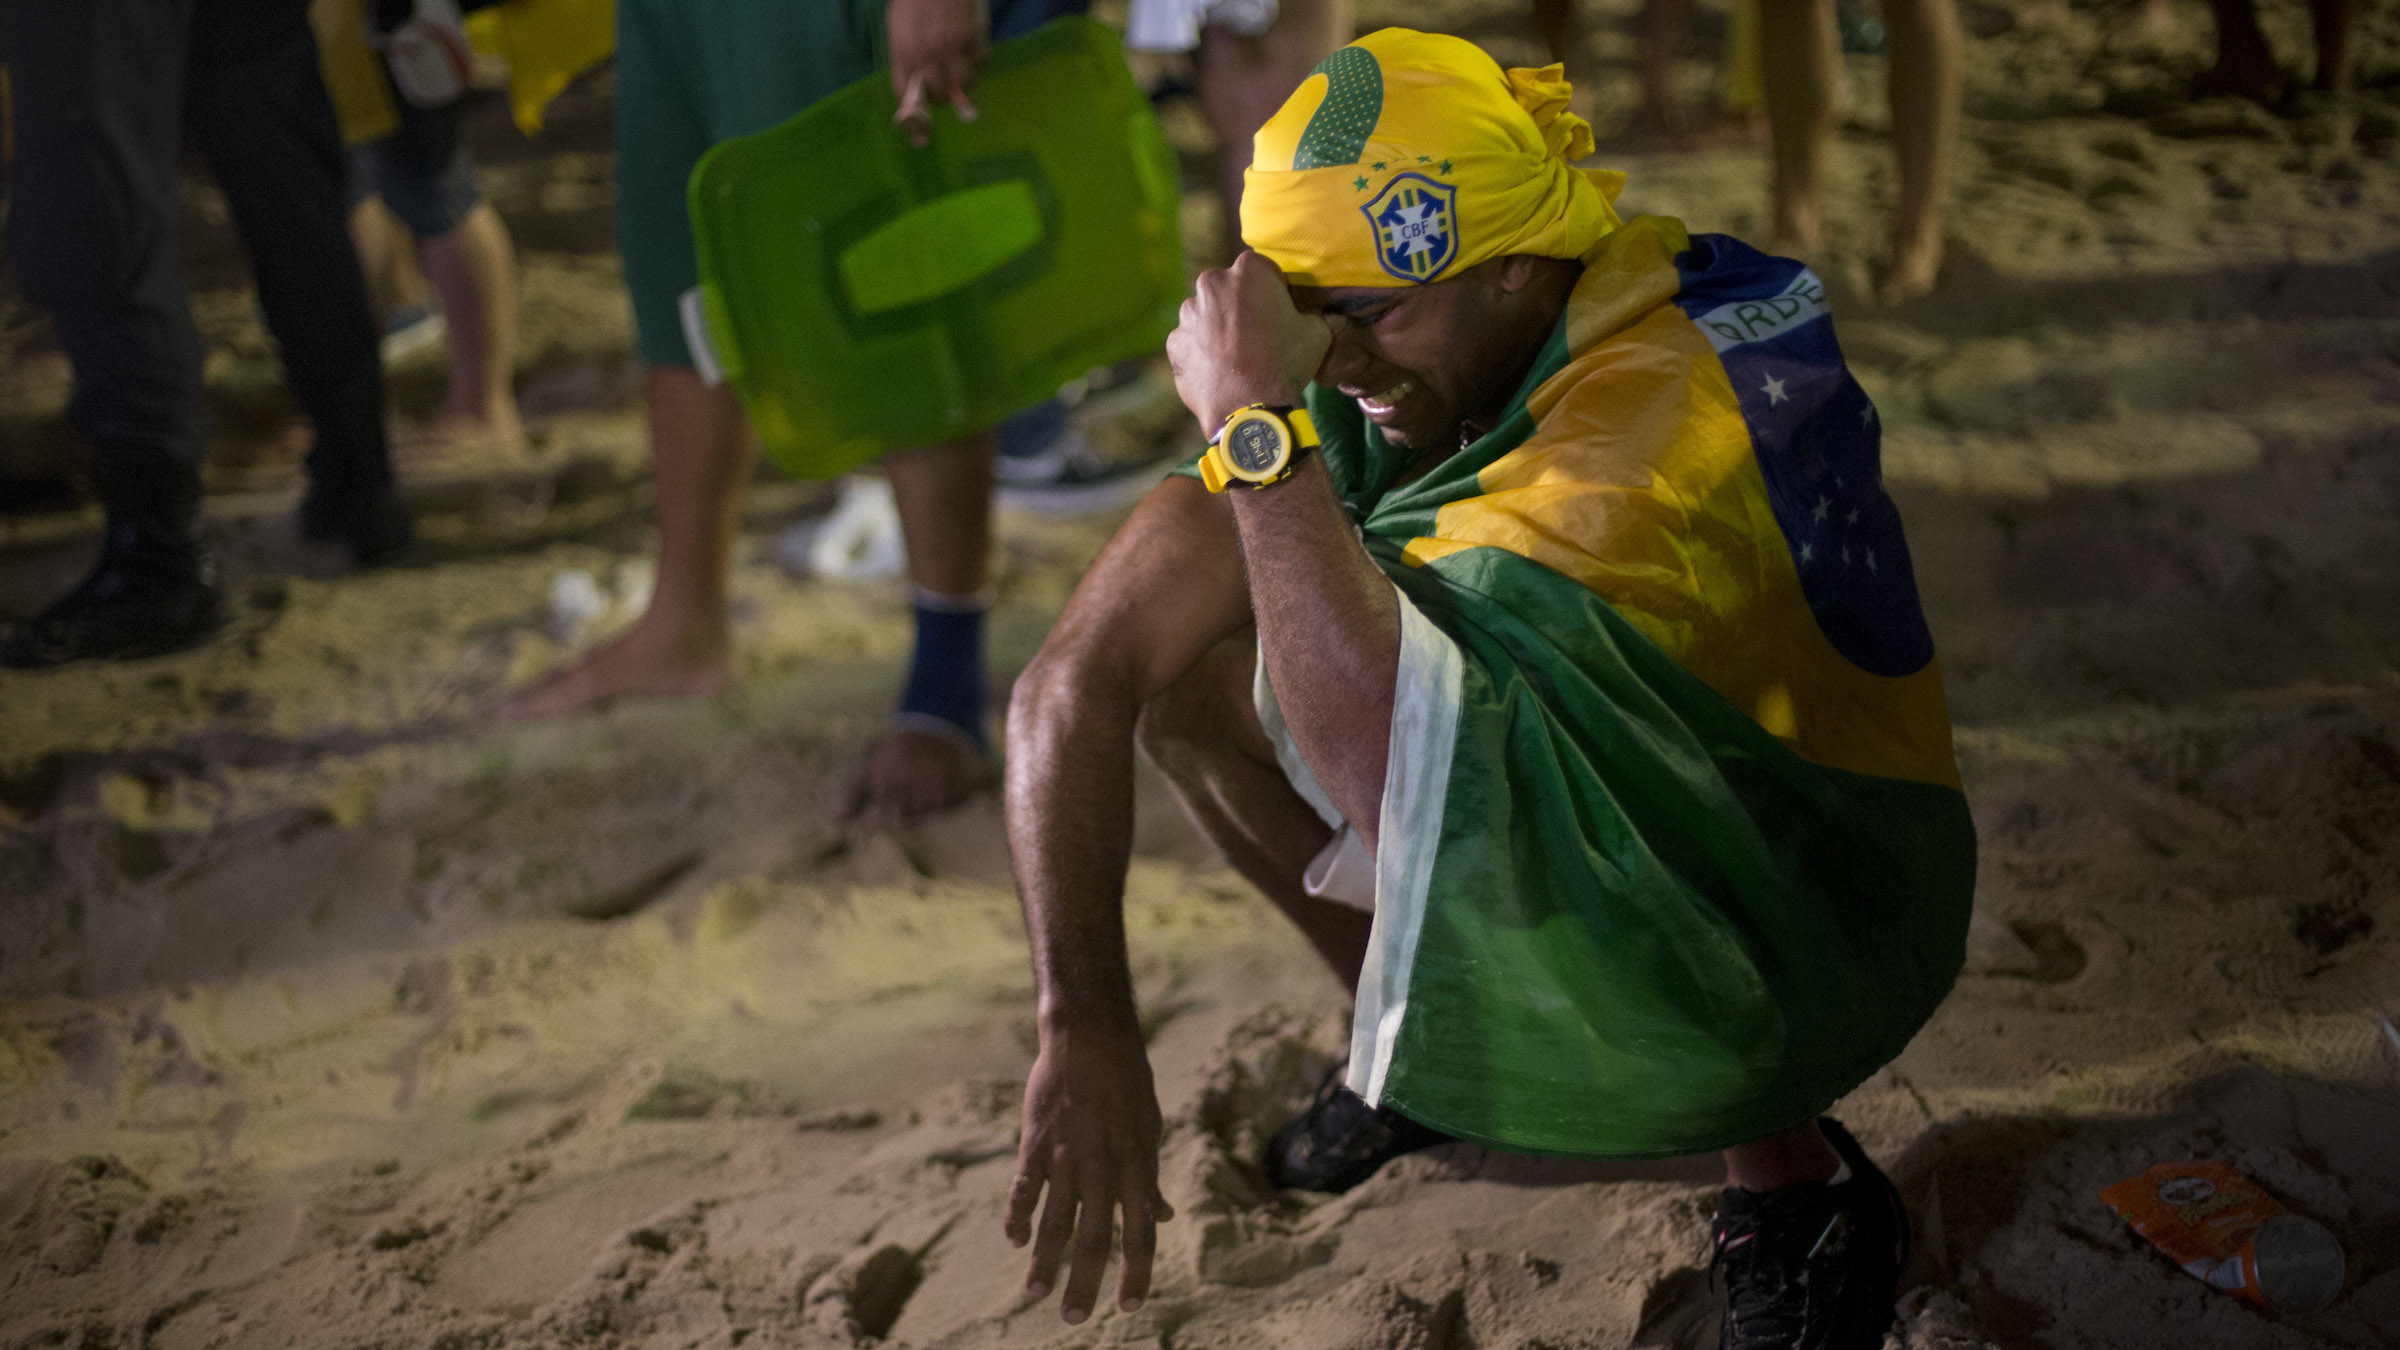 Brazil's loss triggers emotions throughout the body